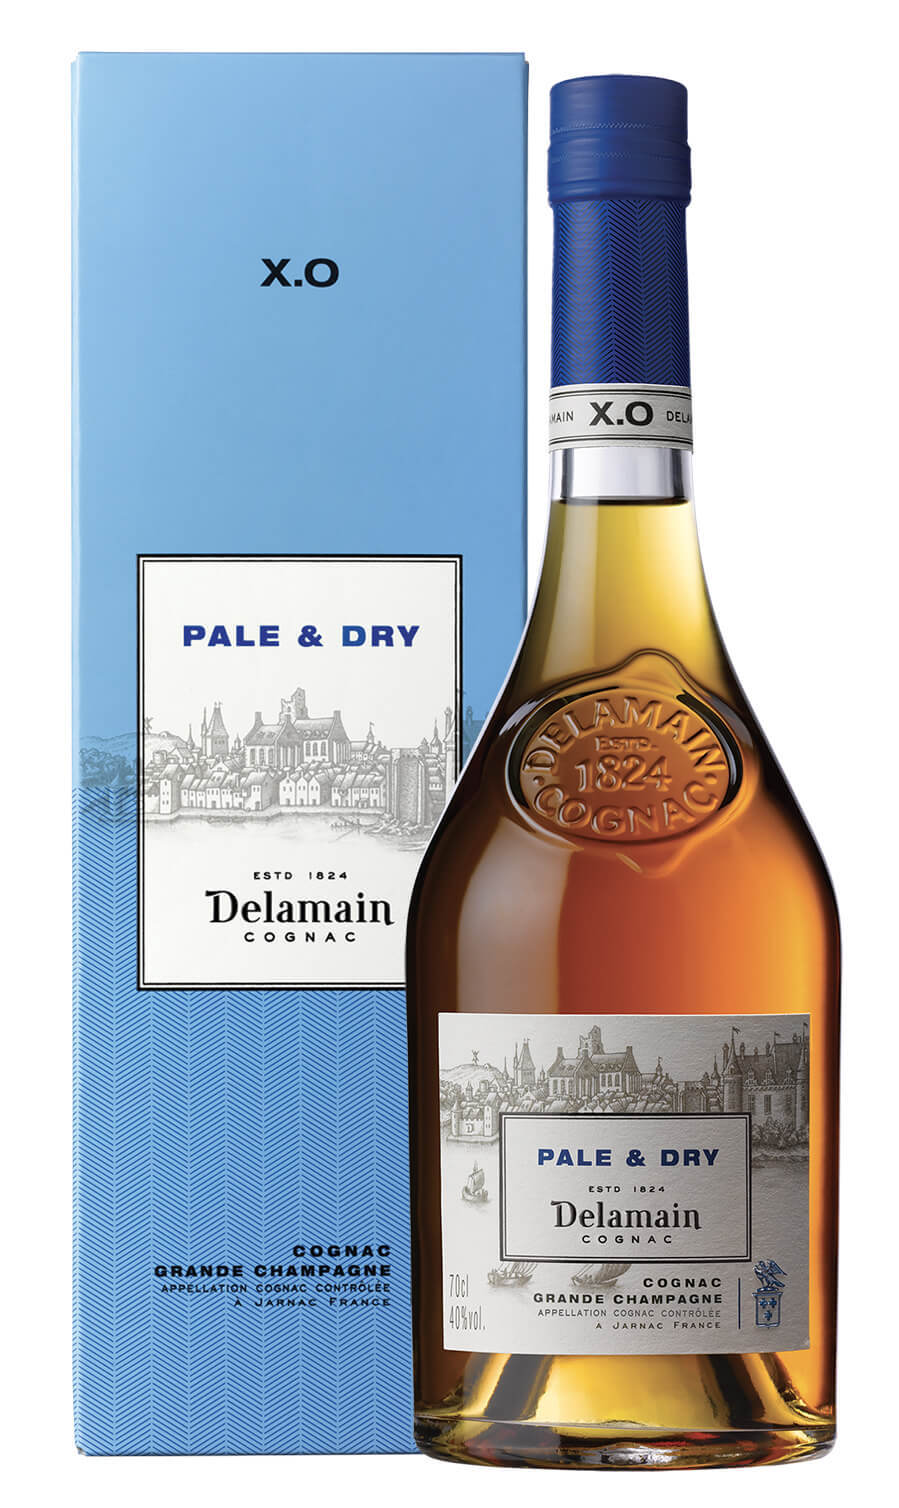 Delamain Pale & Dry XO